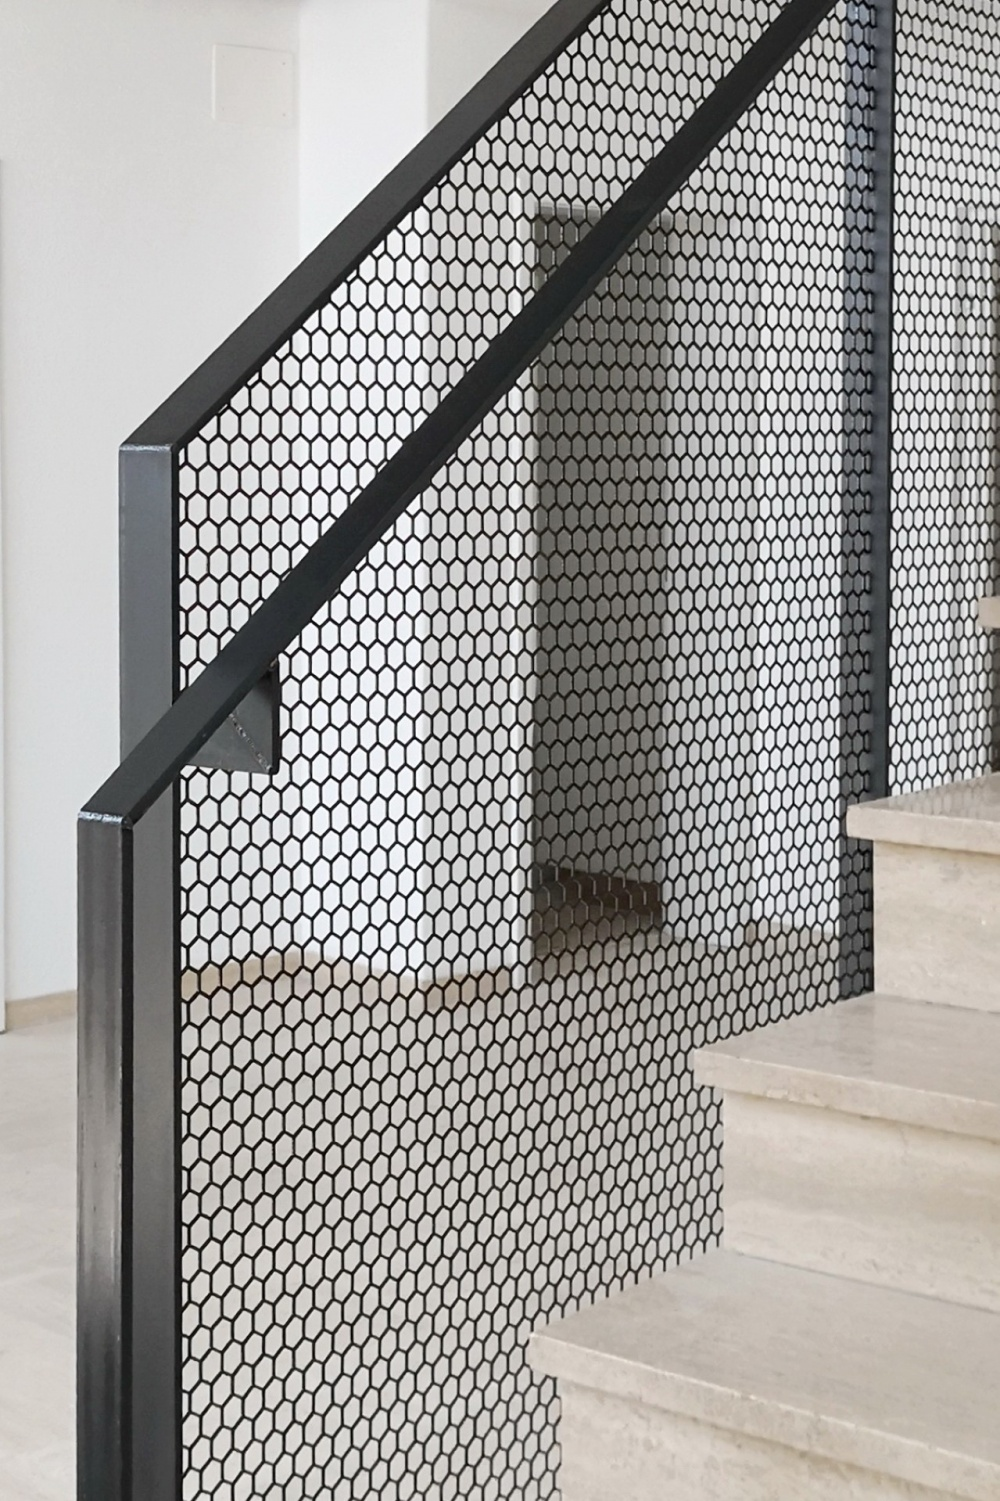 Best Hexagonal Perforated Steel Balustrade Made By Luginbuehl 400 x 300